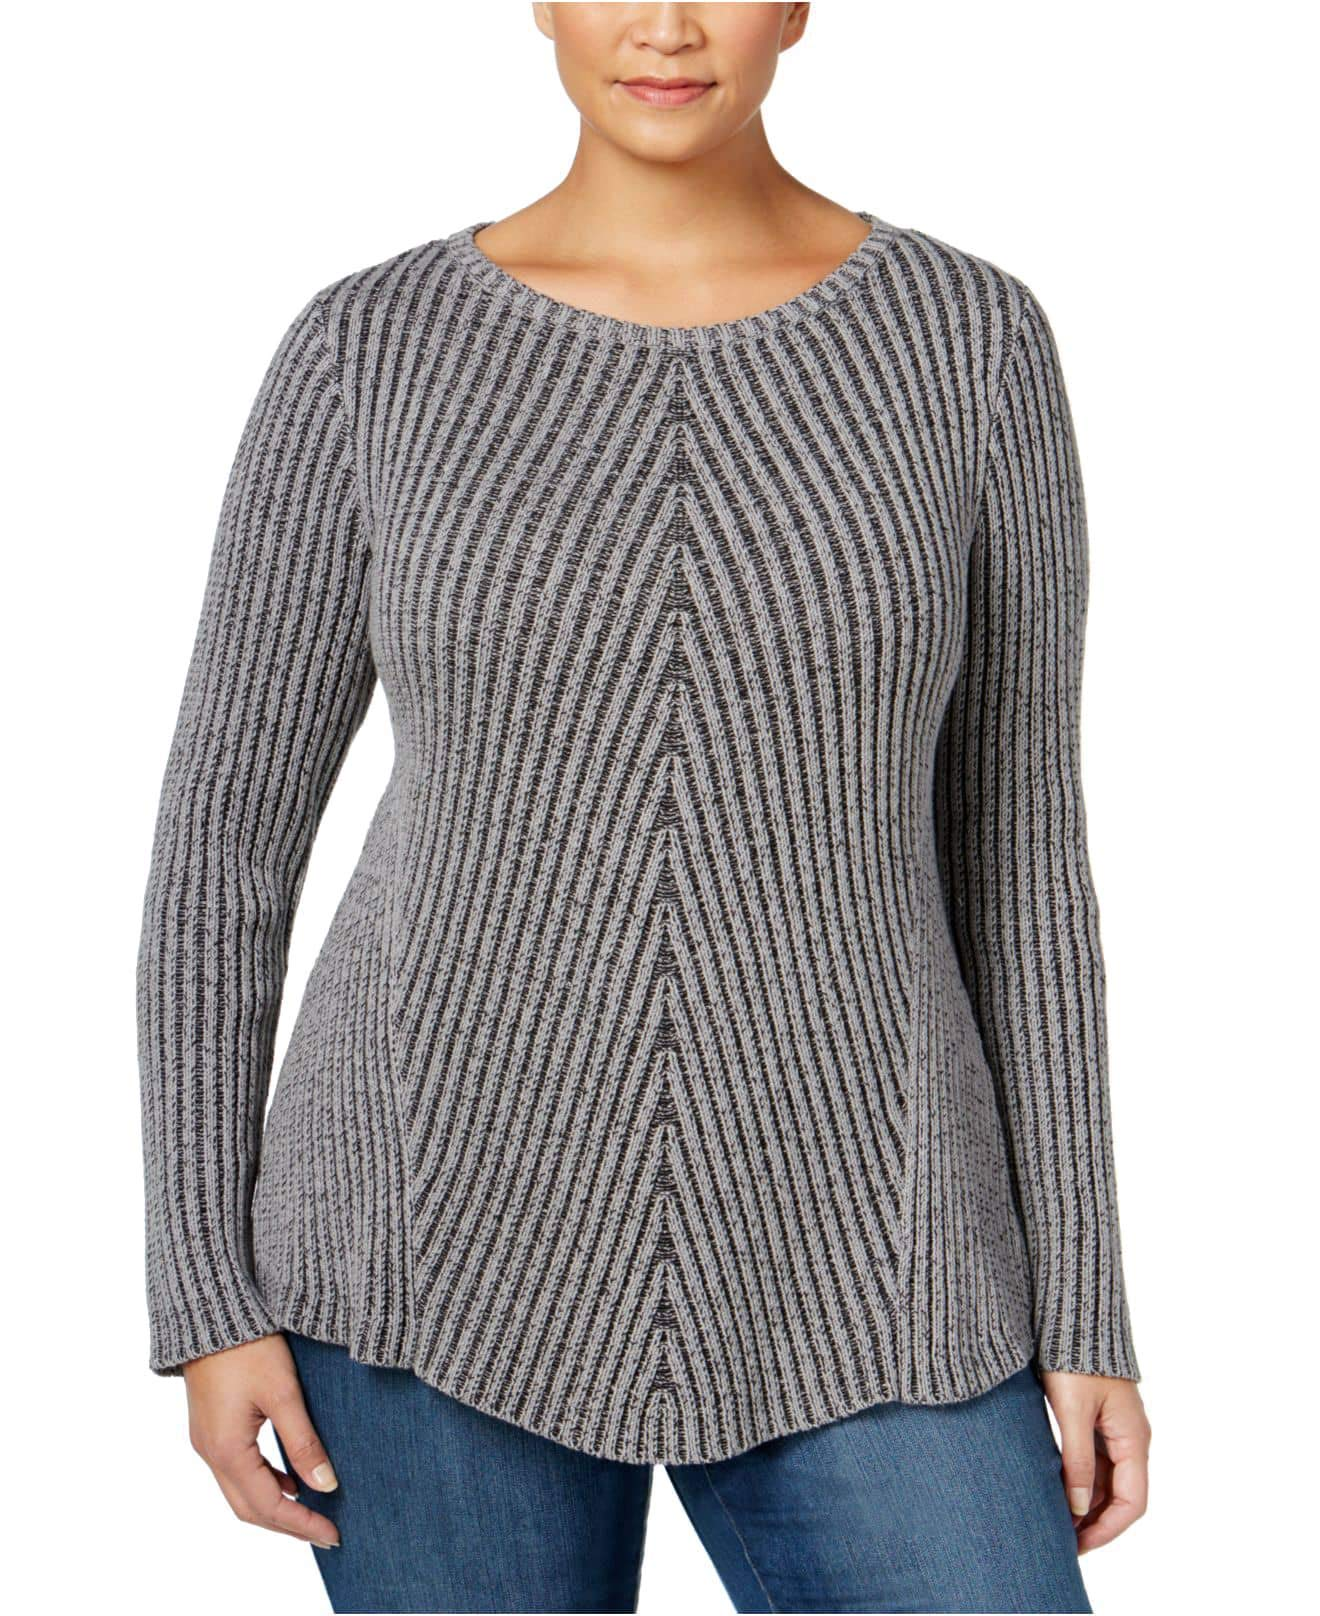 Style & Co. Womens Plus Ribbed Knit Boatneck Pullover Sweater Gray 1X